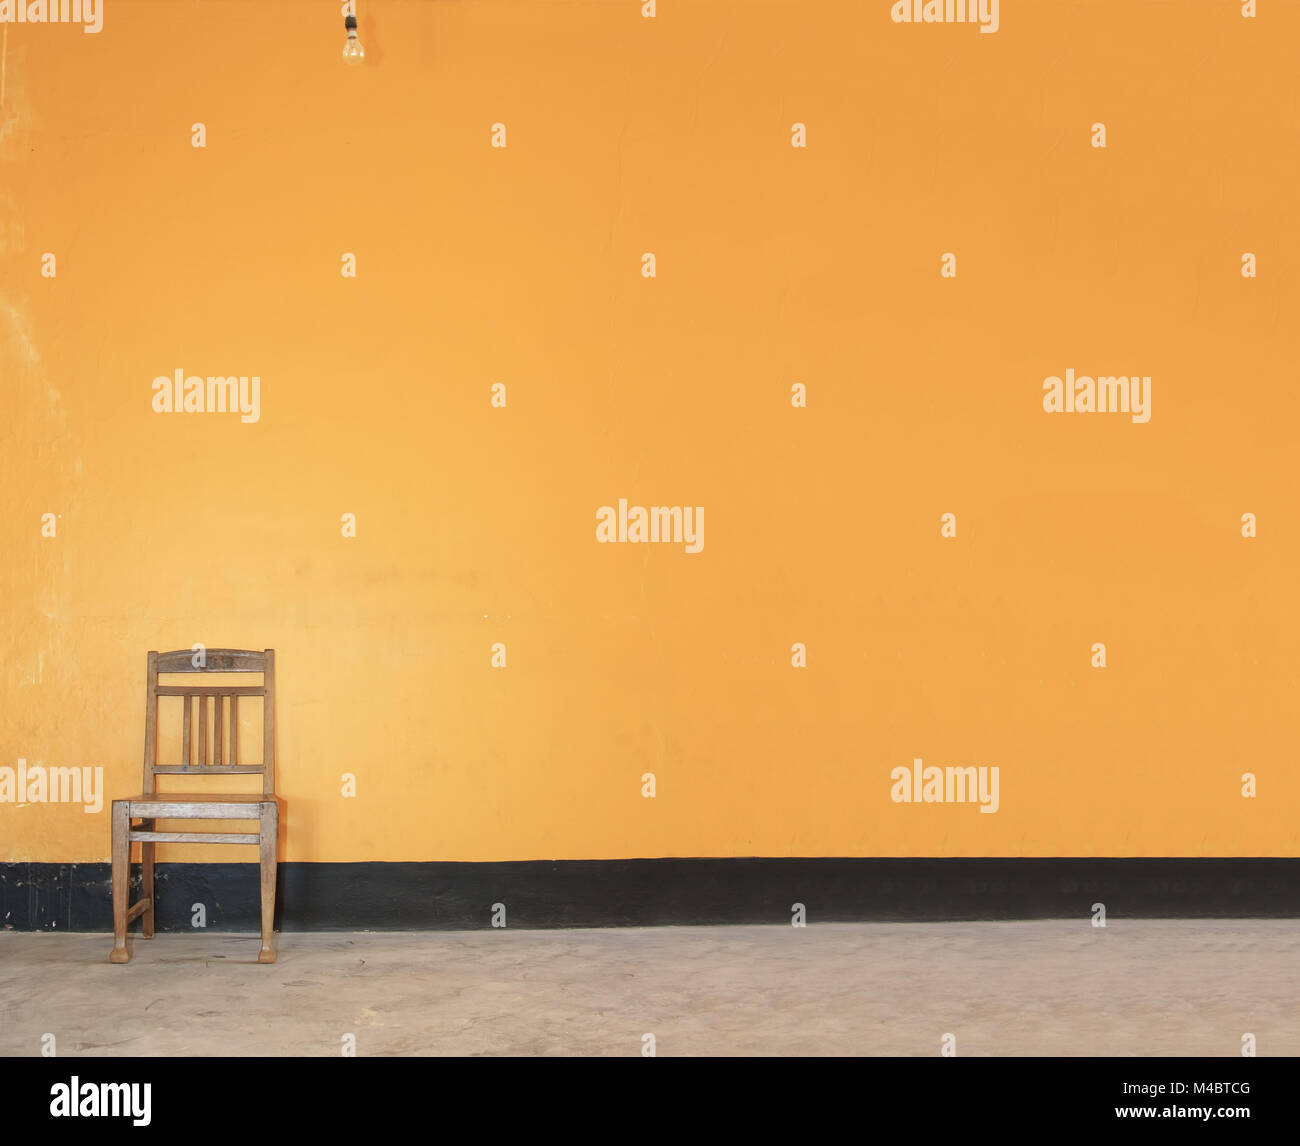 Orange Wooden Chair Stock Photos & Orange Wooden Chair Stock Images ...